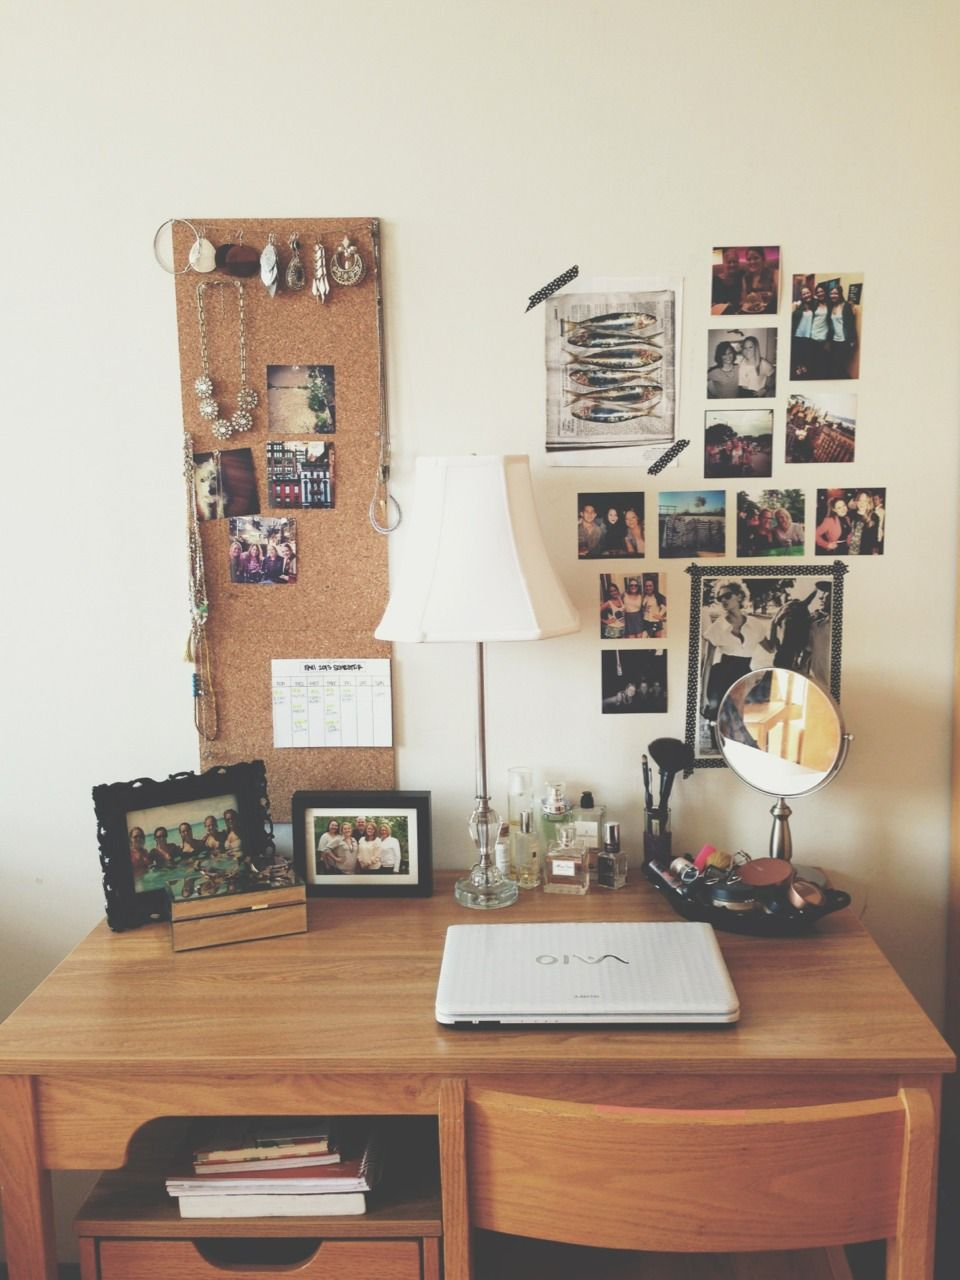 I love how this typical dorm room desk has been